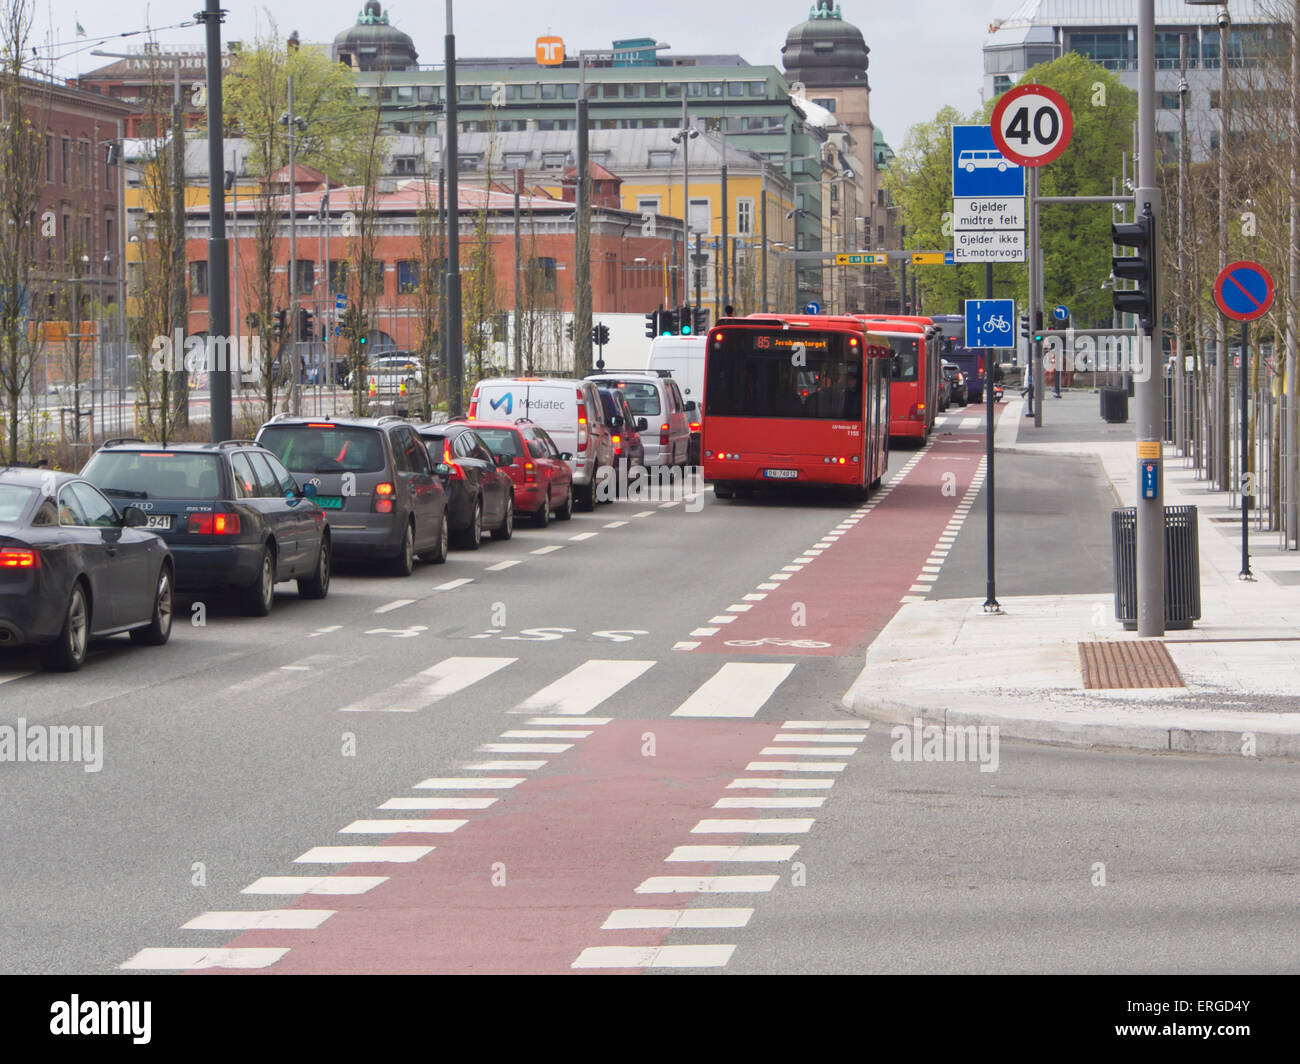 Downtown Oslo Norway, prioritized bike lane with red tarmac and bus lane, congested ordinary traffic lane - Stock Image